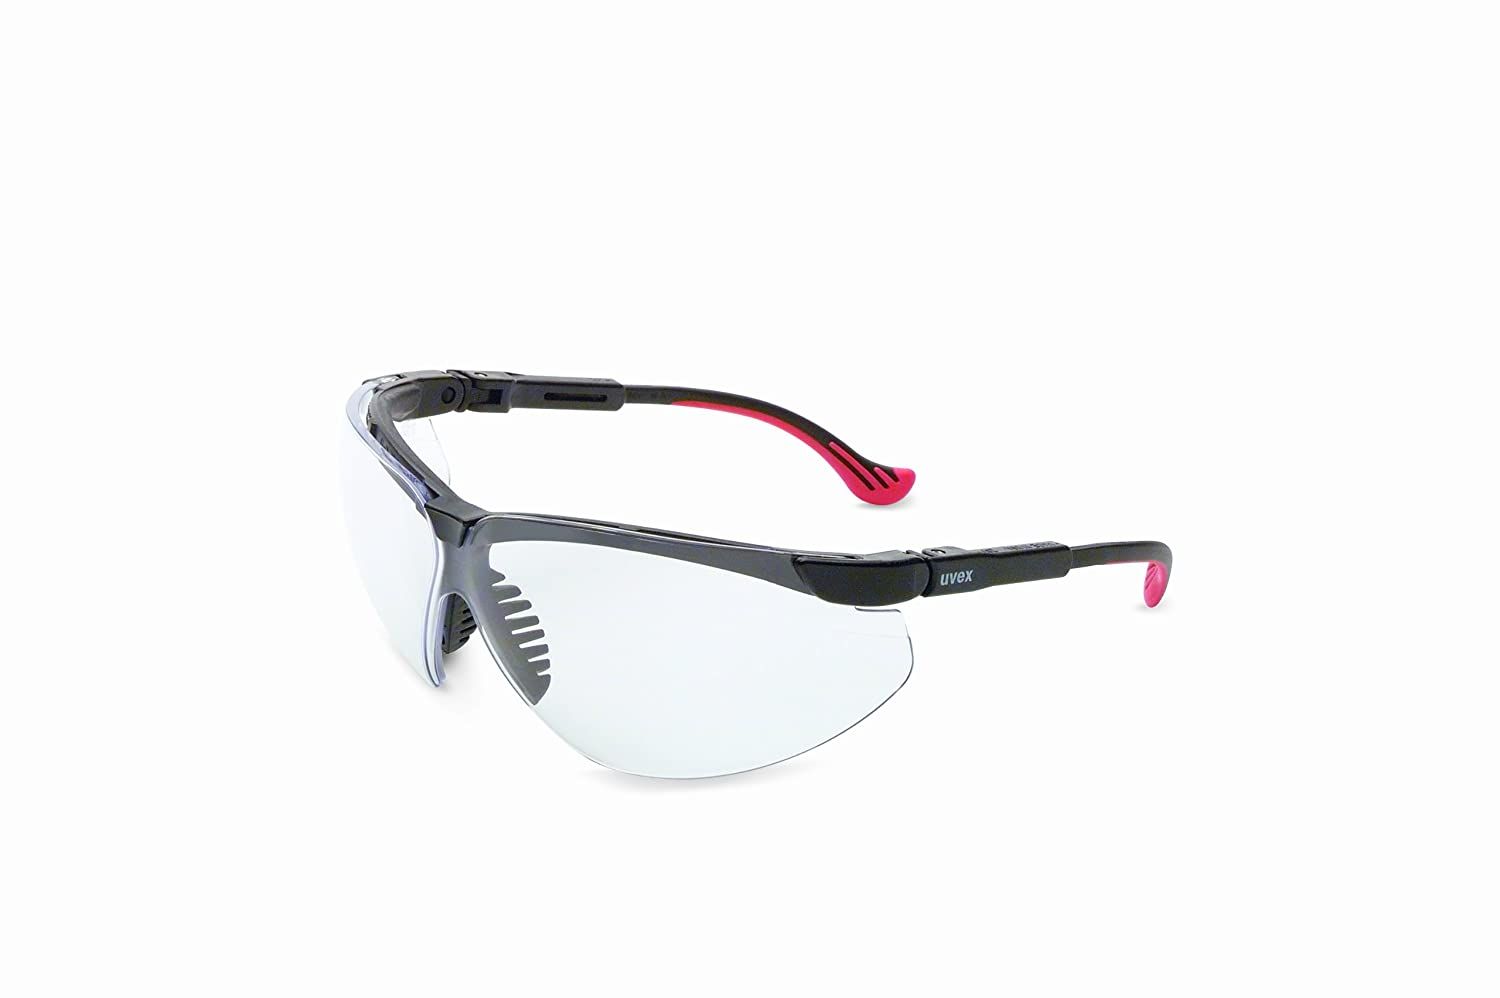 Uvex by Honeywell Genesis XC Safety Glasses, Black Frame with Clear Lens & Uvextreme Anti-Fog Coating(S3300X)